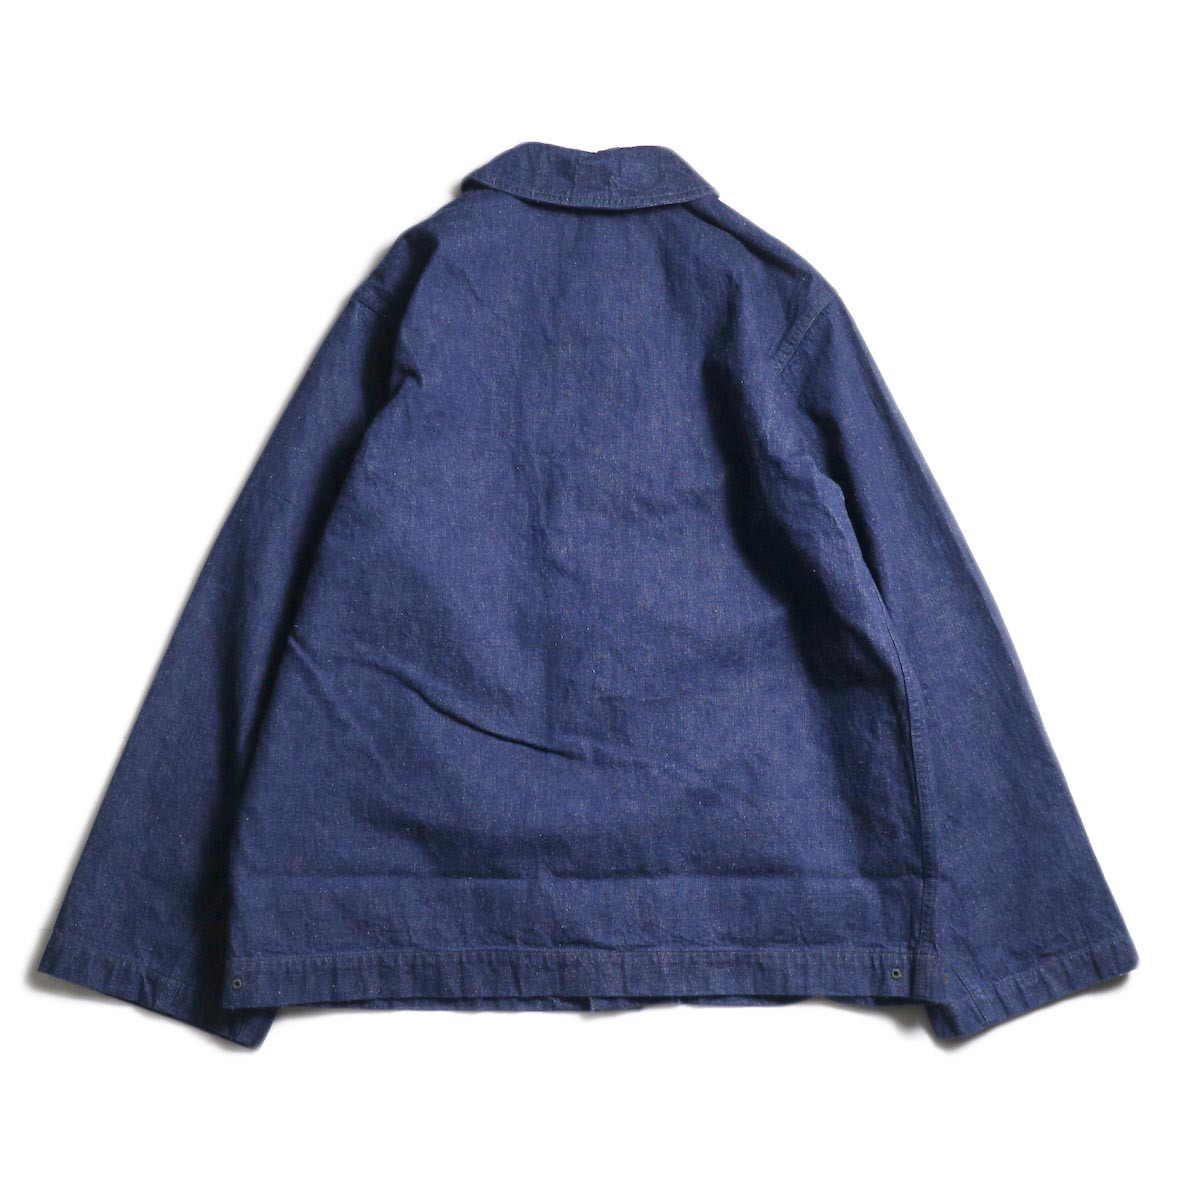 orSlow / US NAVY SHAWL COLLAR JACKET (One Wash)背面